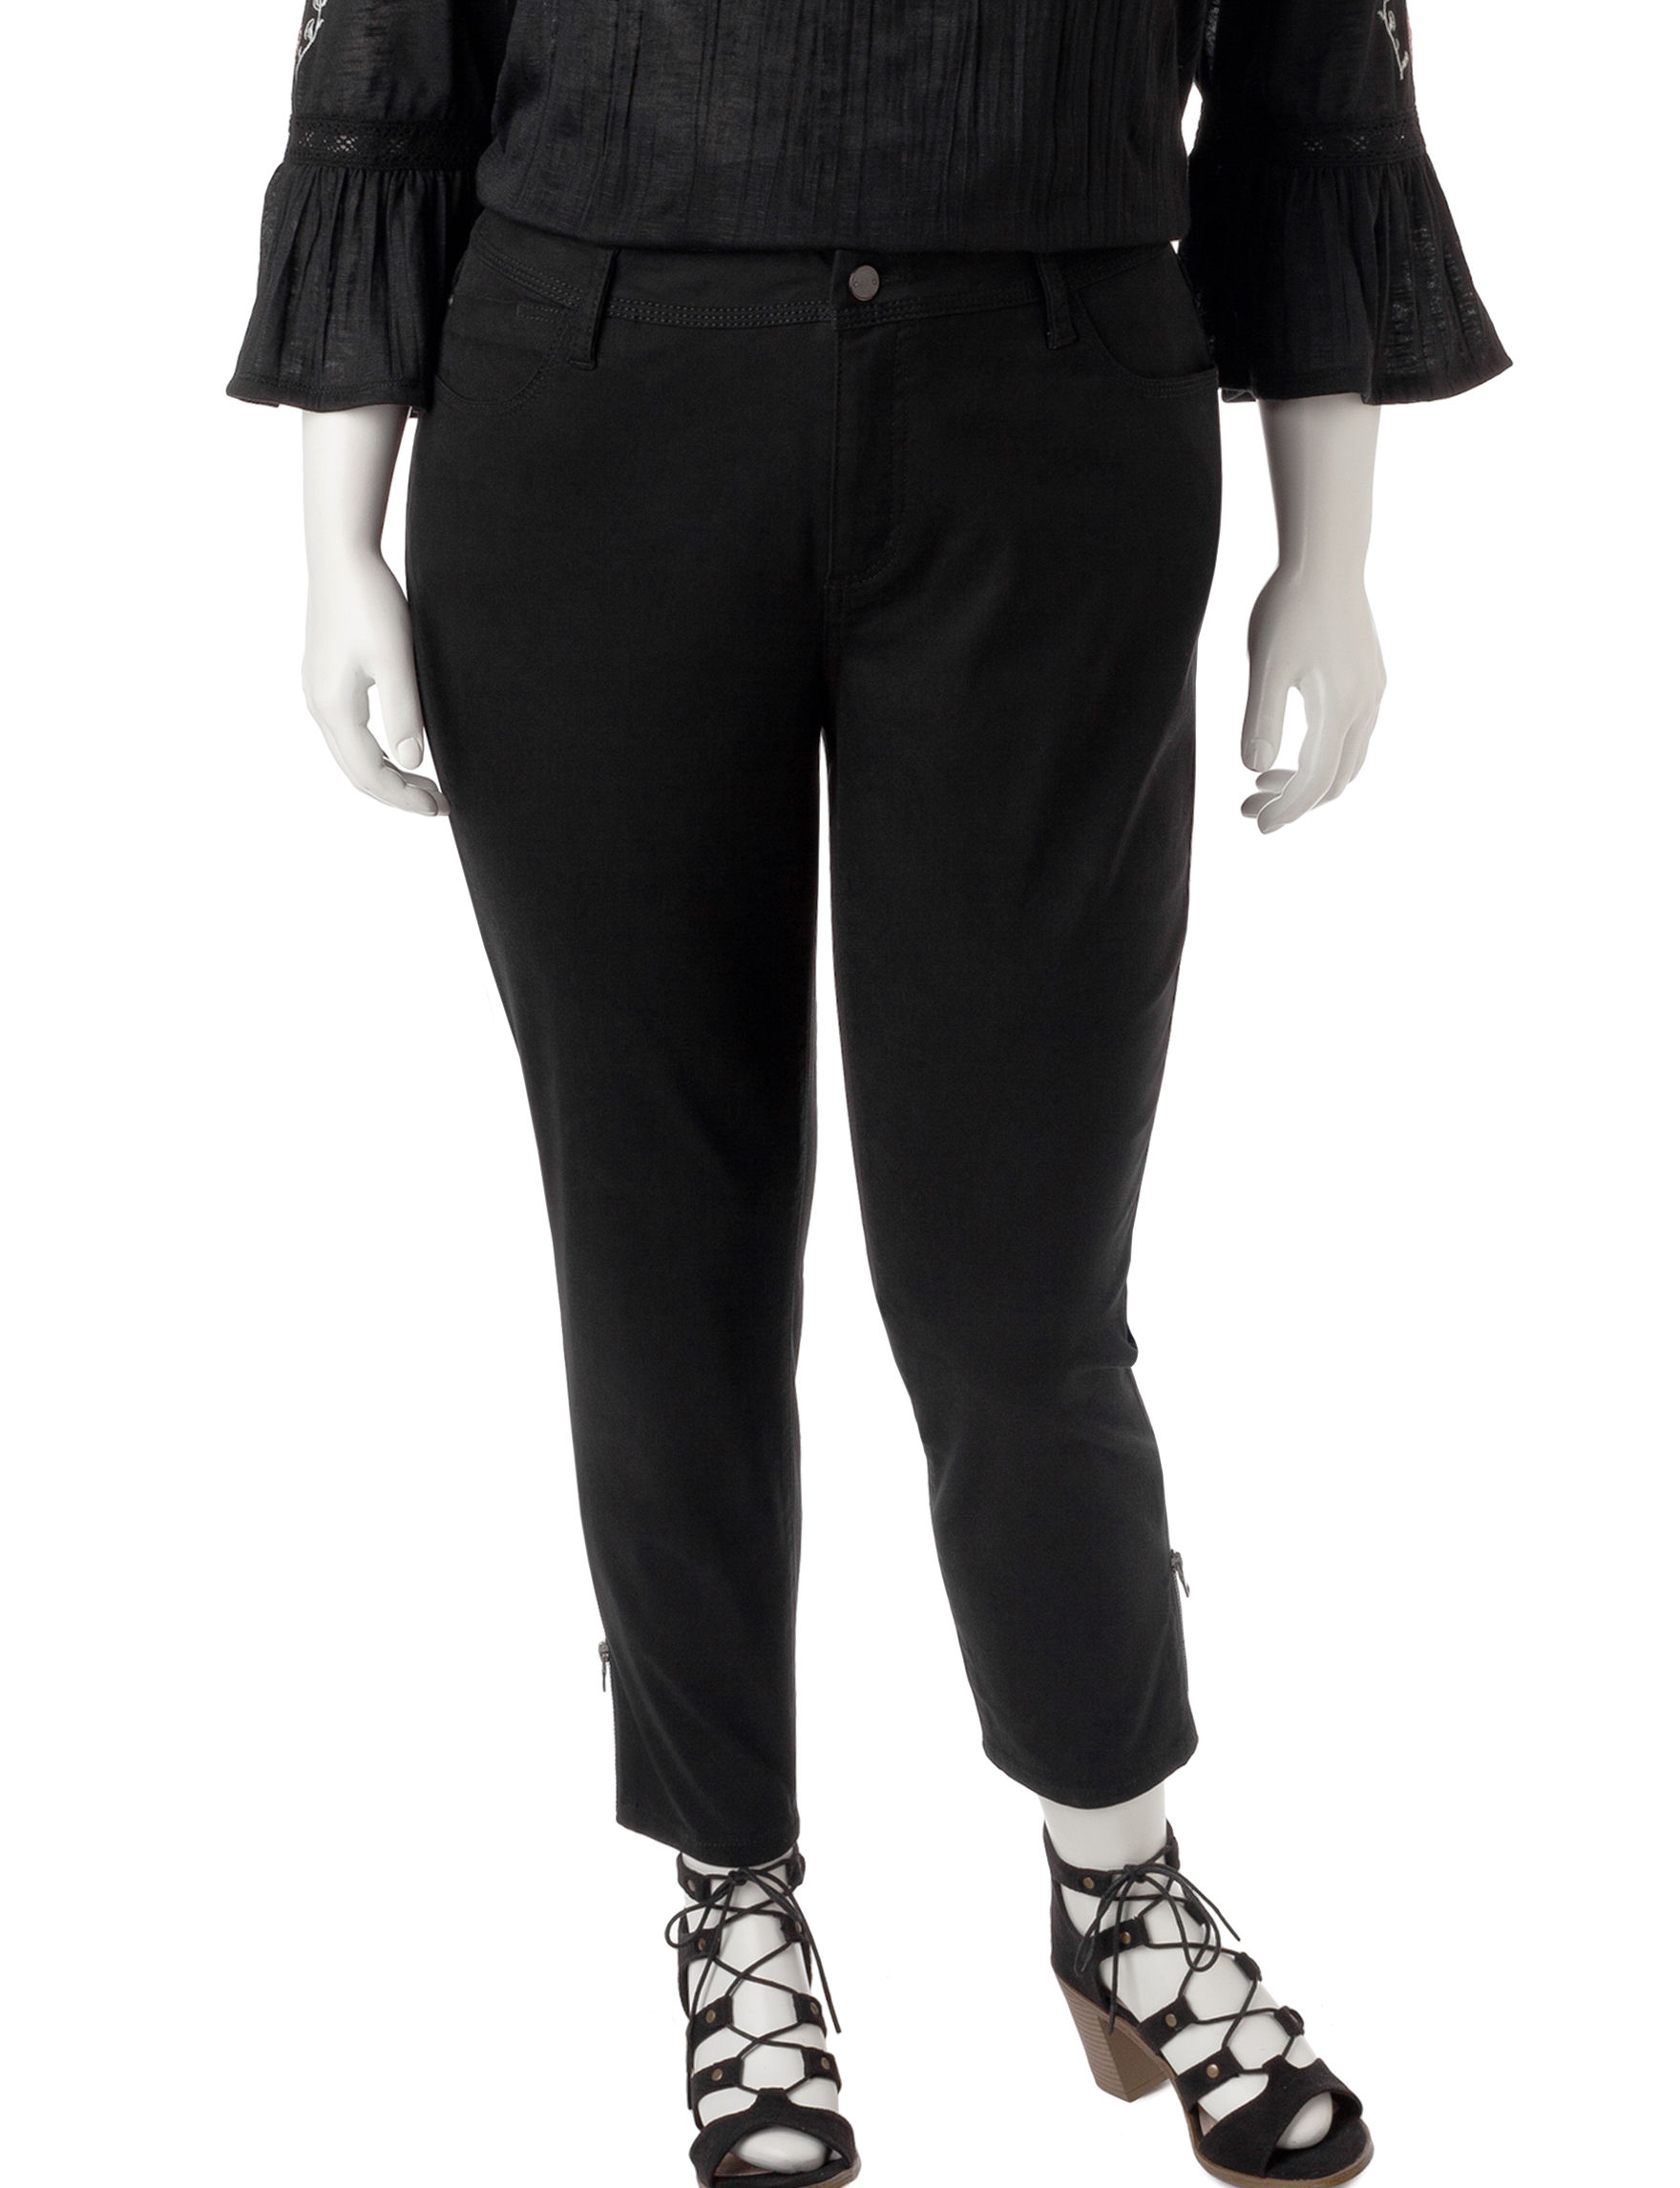 Signature Studio Black Jeggings